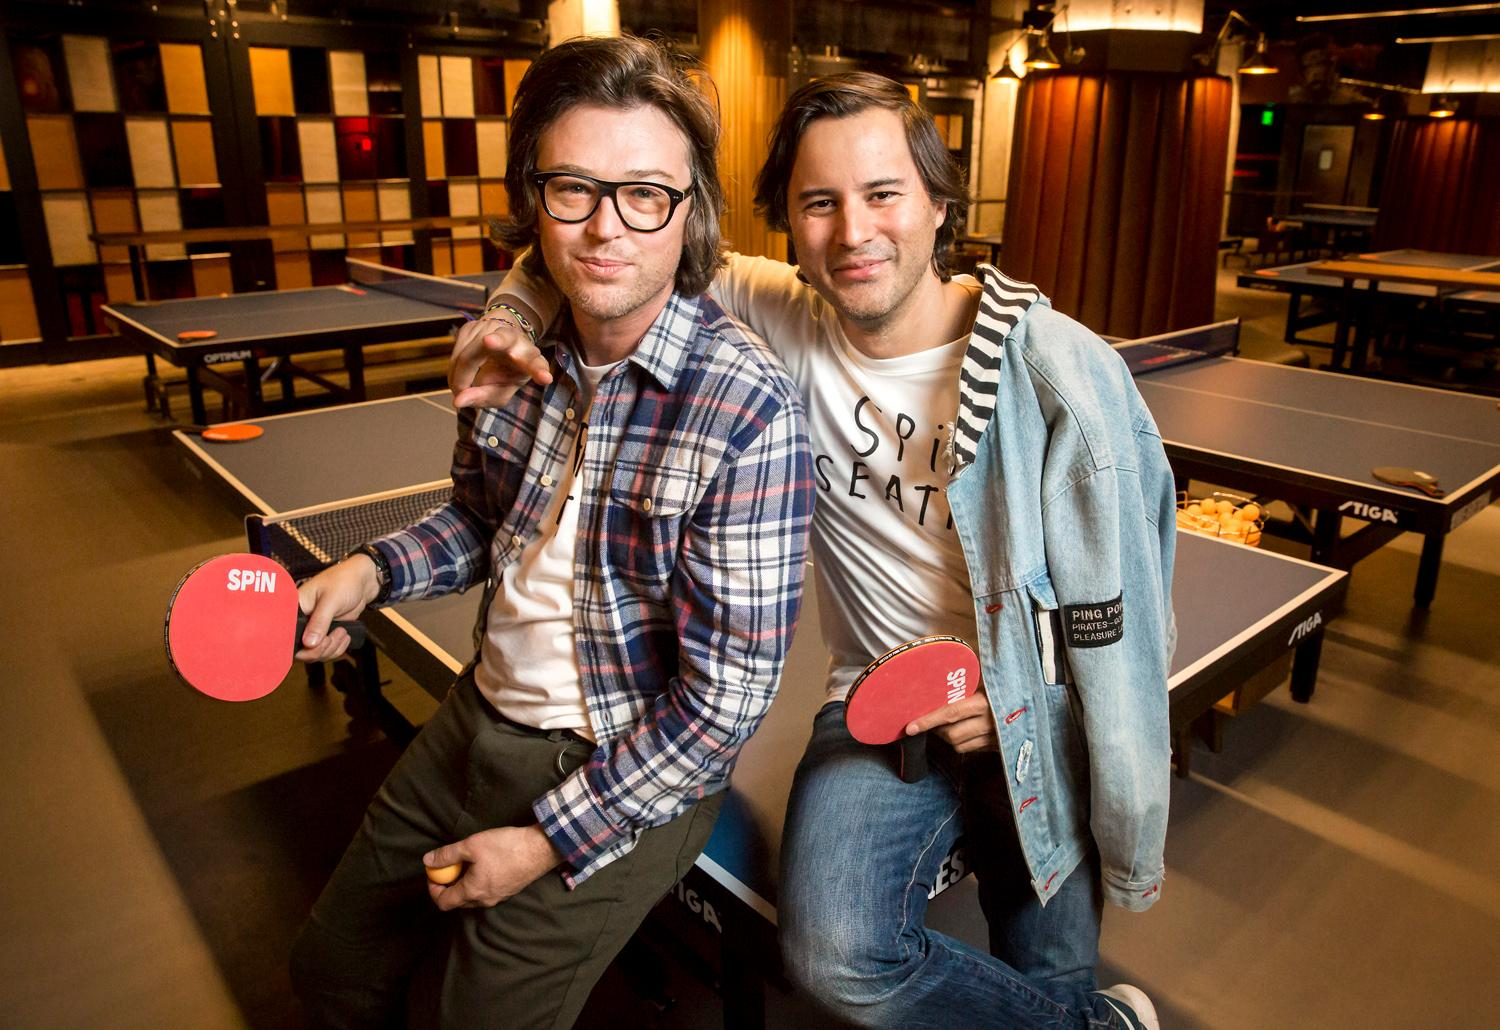 It's called SPiN Ping Pong, and it's fan-freaking-tastic. Originally from New York, the brand is known to inspire fans and newbies alike to join together in a love for ping pong. Opening Dec. 20, 2017 at 1511 6th Avenue in the Decatur Building, originally built in the 1920s, SPiN will occupy the entire lower level offering tournaments, monthly programming, private lessons, corporate parties and casual play. More info at wearespin.com. (Image: Sy Bean / Seattle Refined)